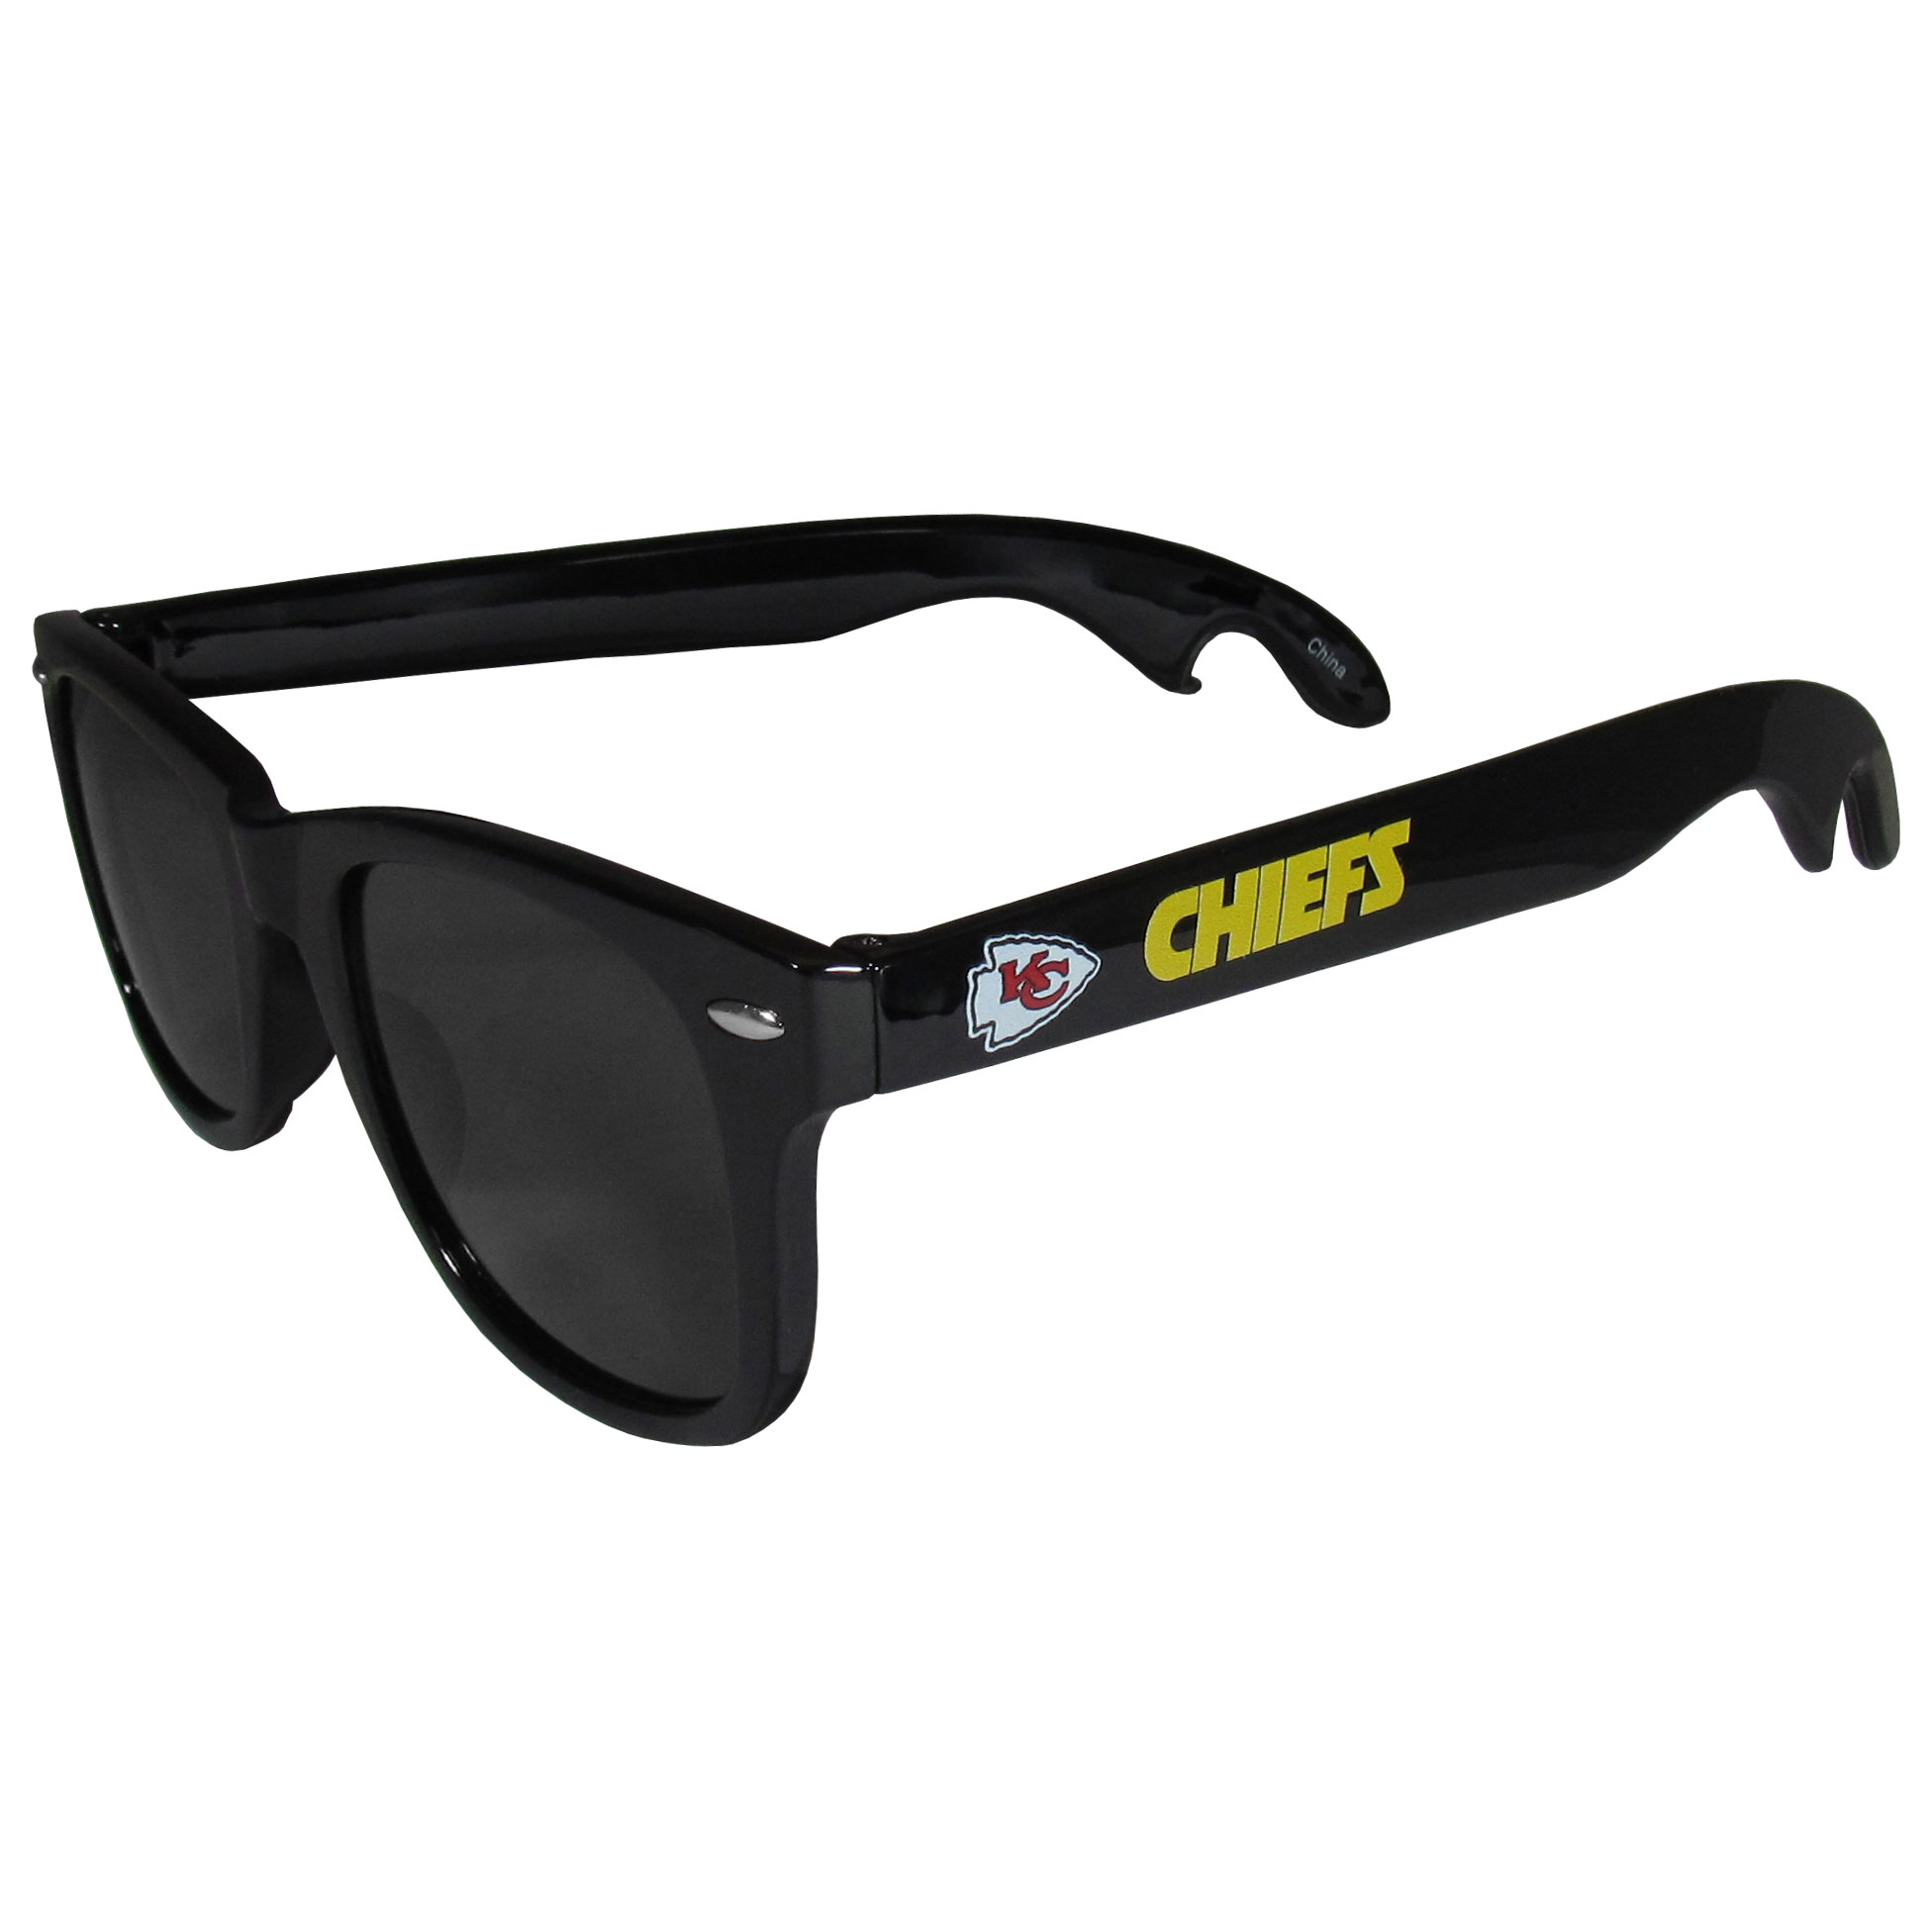 Kansas City Chiefs Beachfarer Bottle Opener Sunglasses - Seriously, these sunglasses open bottles! Keep the party going with these amazing Kansas City Chiefs bottle opener sunglasses. The stylish retro frames feature team designs on the arms and functional bottle openers on the end of the arms. Whether you are at the beach or having a backyard BBQ on game day, these shades will keep your eyes protected with 100% UVA/UVB protection and keep you hydrated with the handy bottle opener arms.